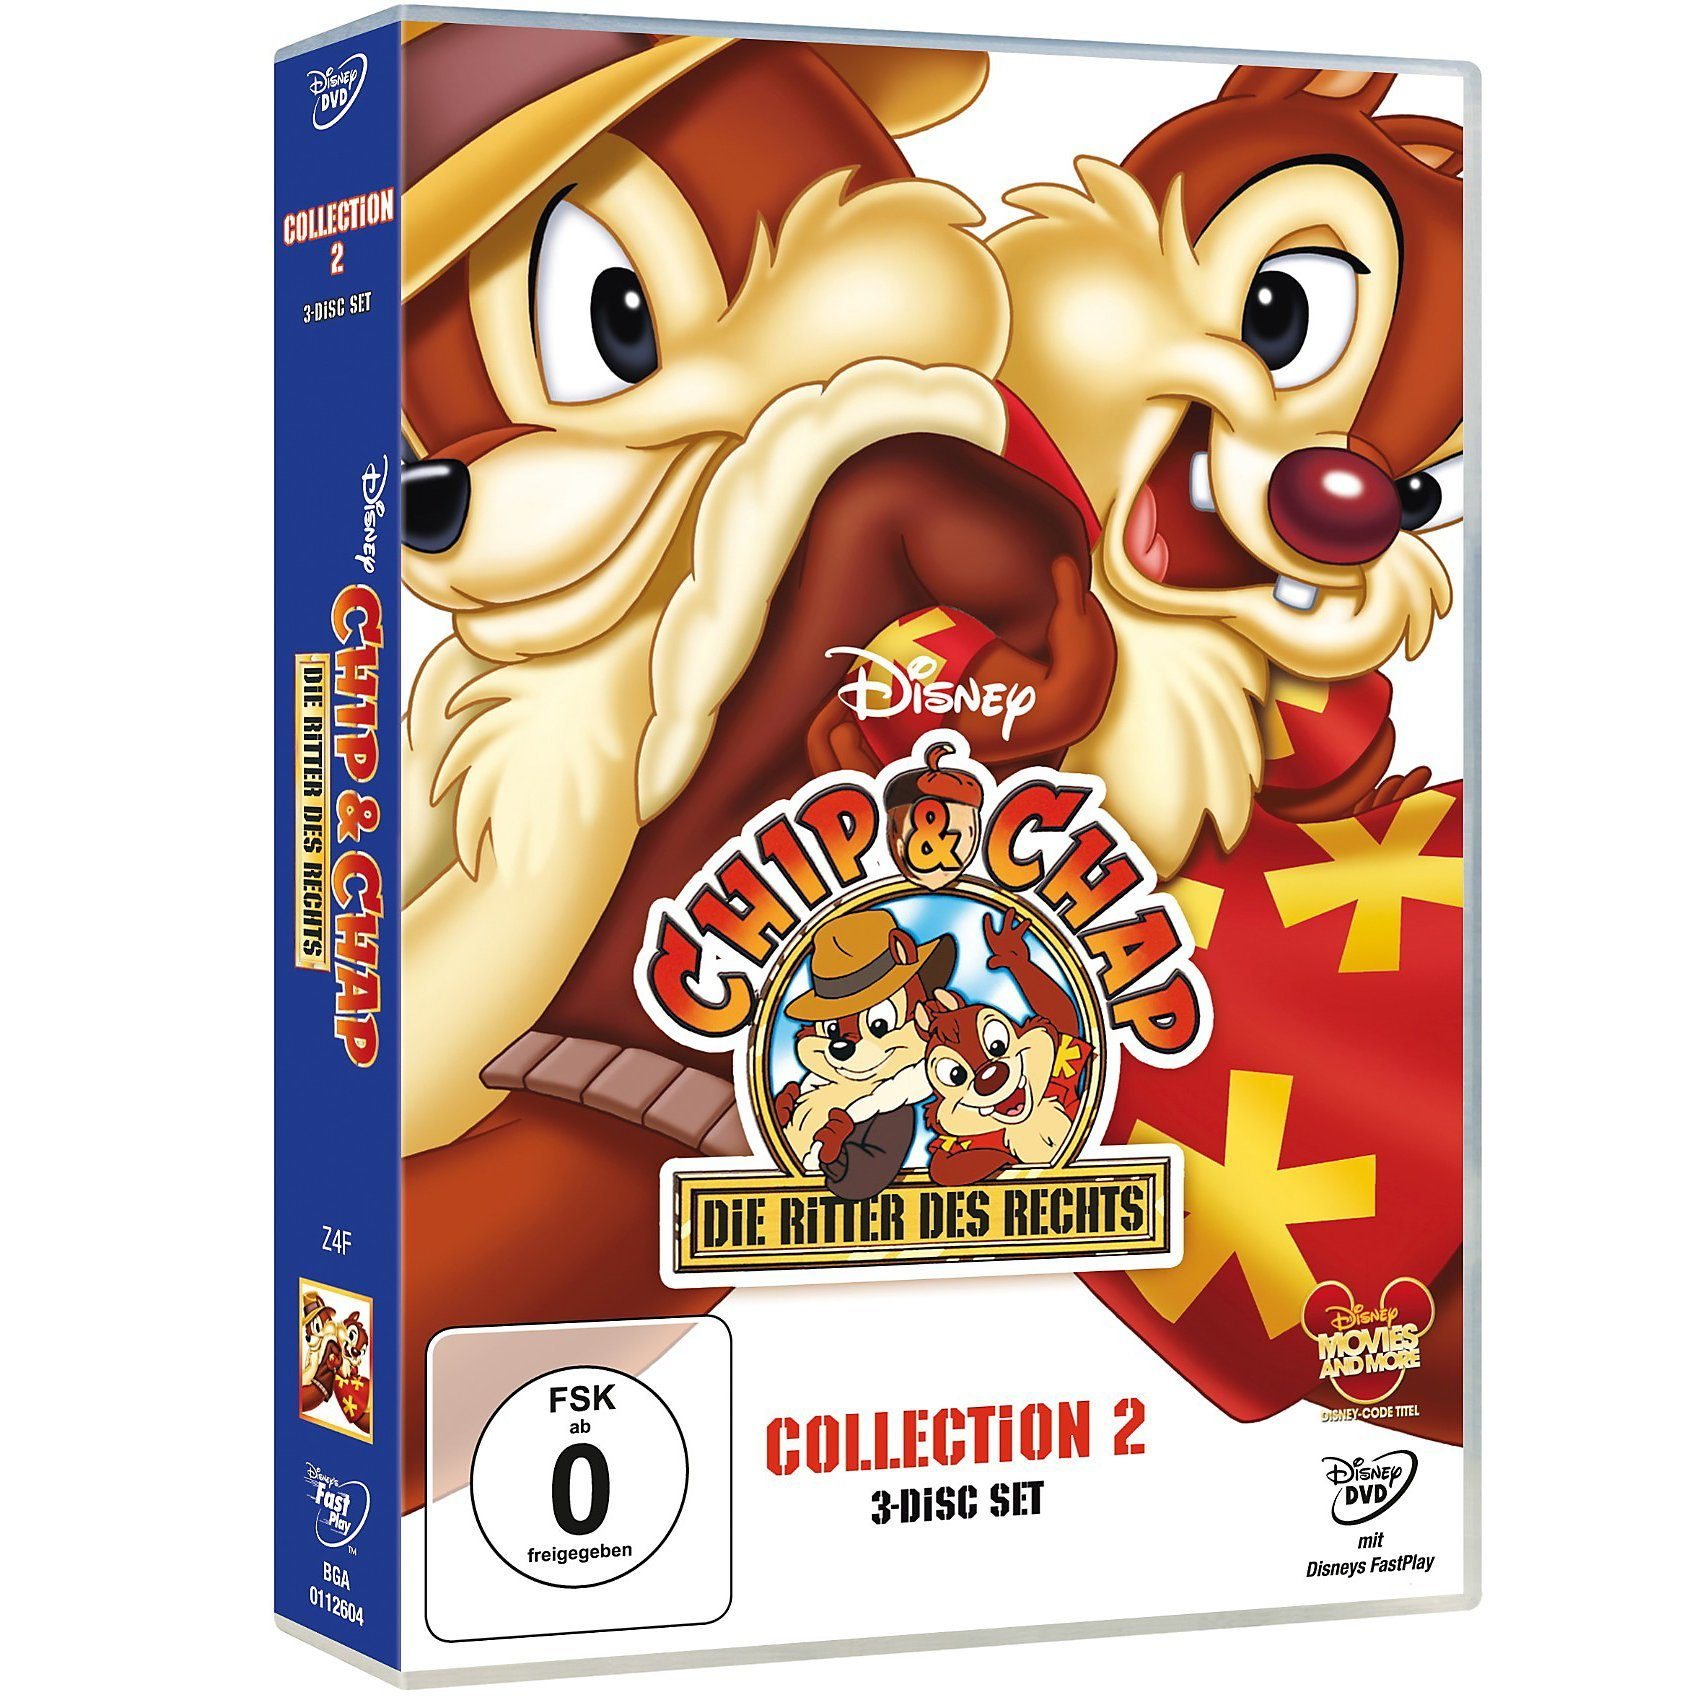 Disney DVD DVD Chip & Chap: Die Ritter des Rechts - Collection 2